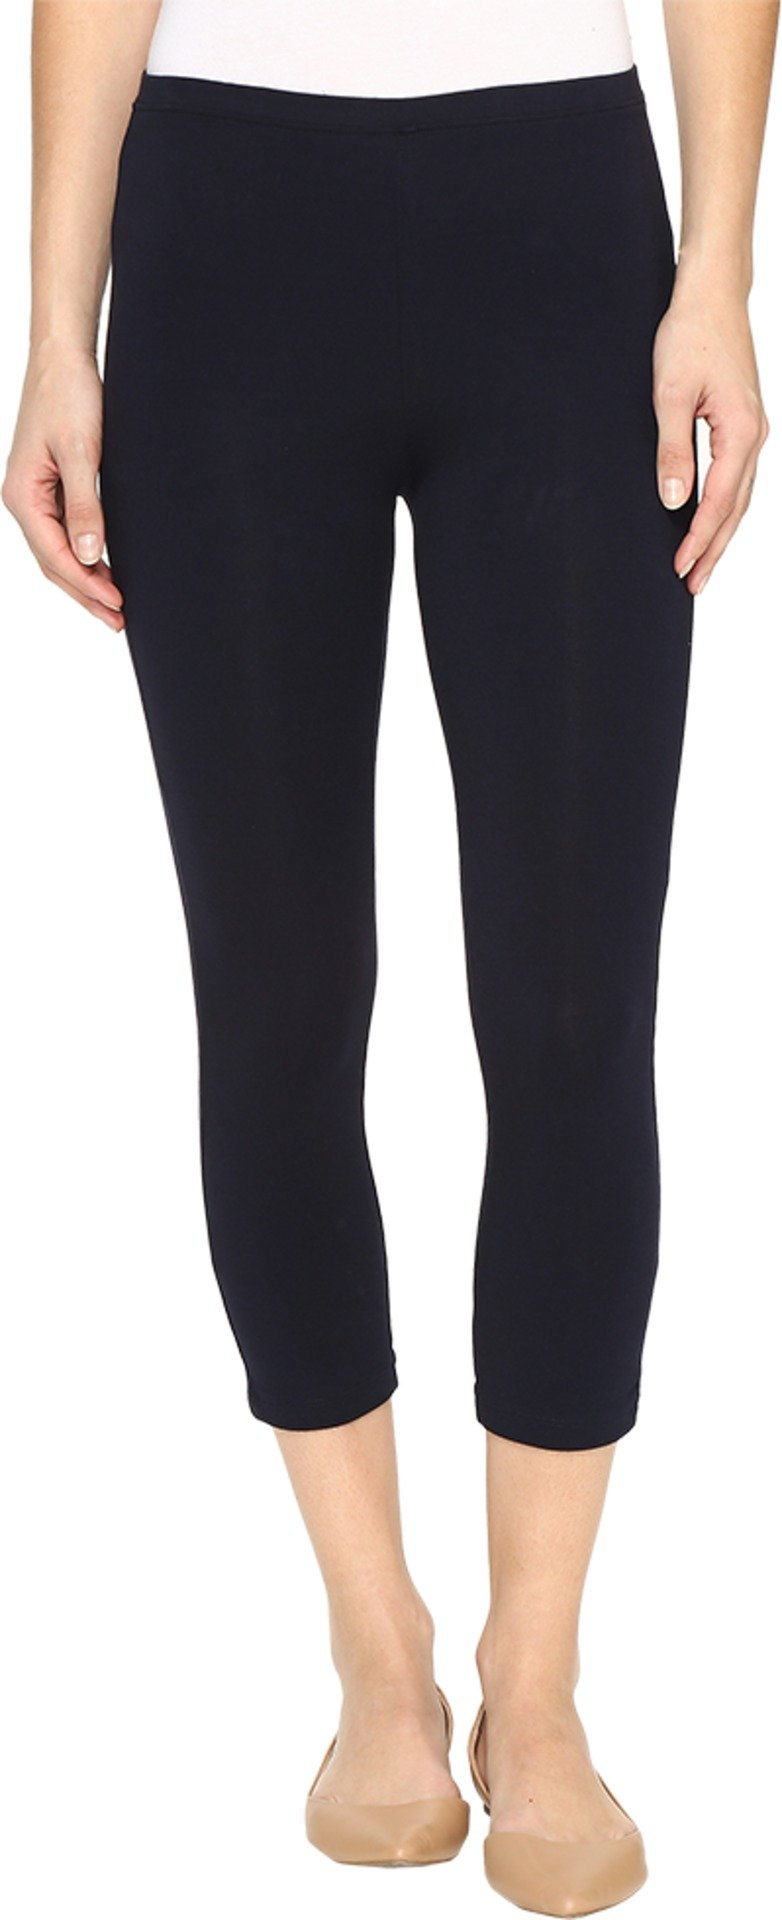 HUE Women's Cotton Capri Legging Navy Large